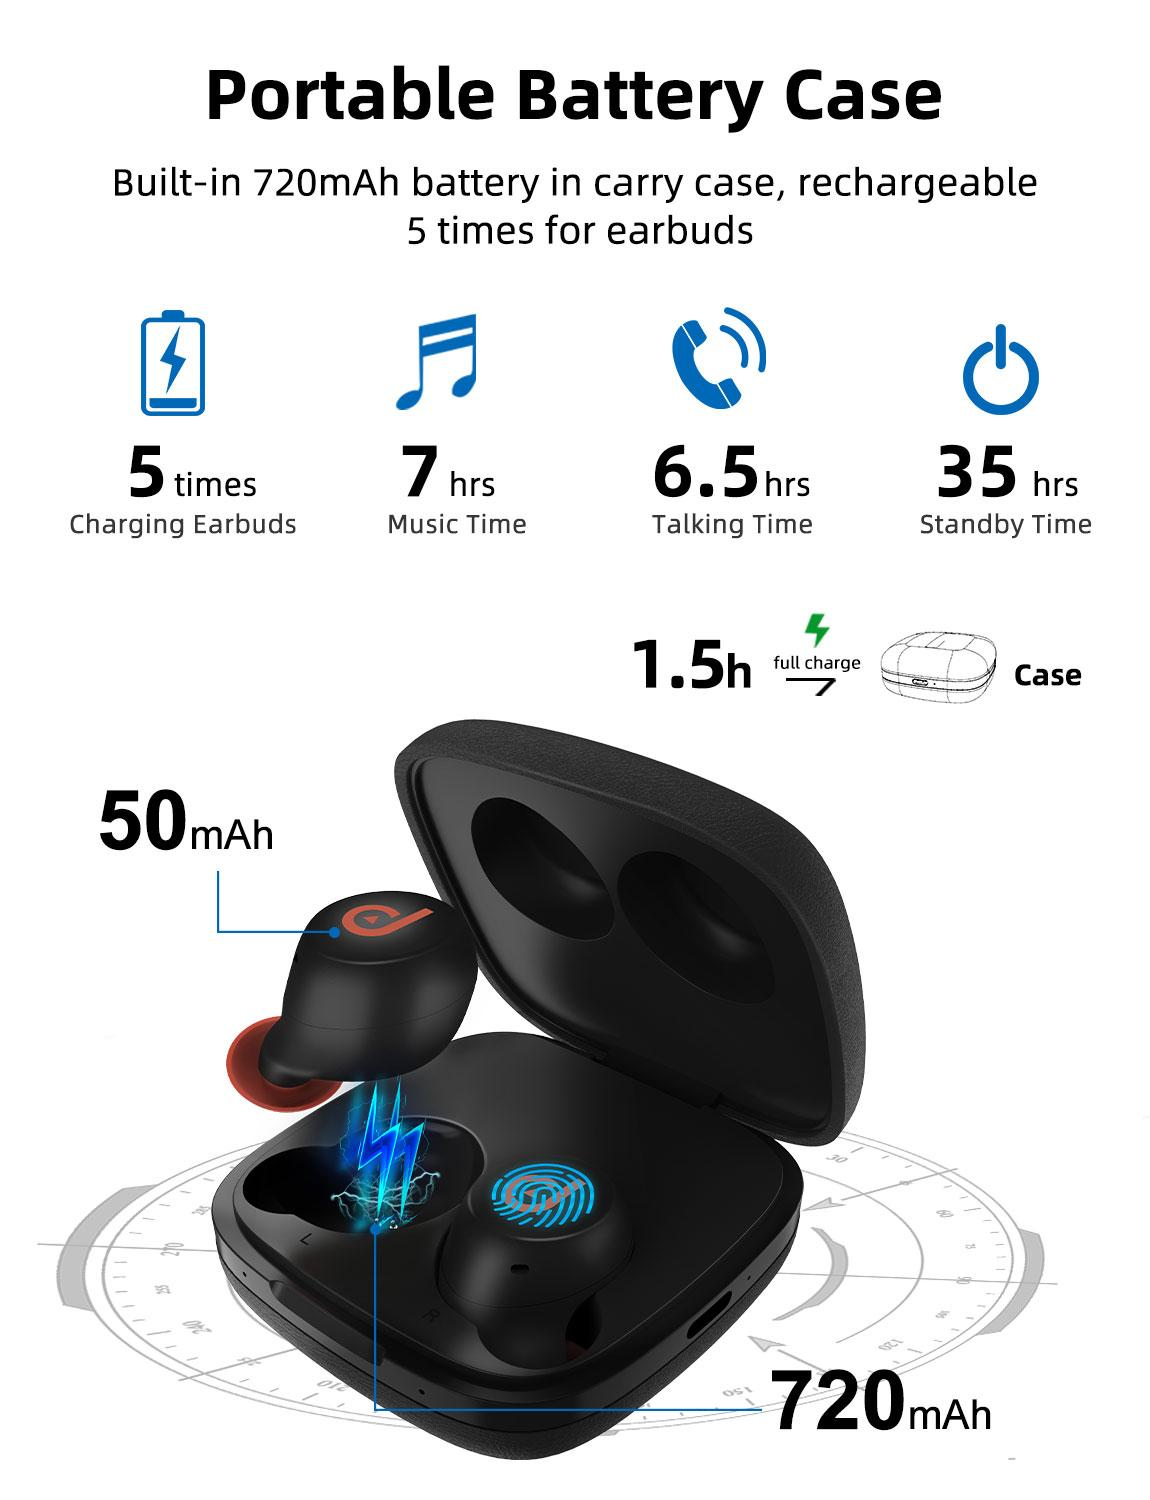 Dyplay True Wireless Earphones Bluetooth 5.0 Noise Canceling Earbuds with Portable Battery Case Auto Pairing Touch Control IPX5 enlarge